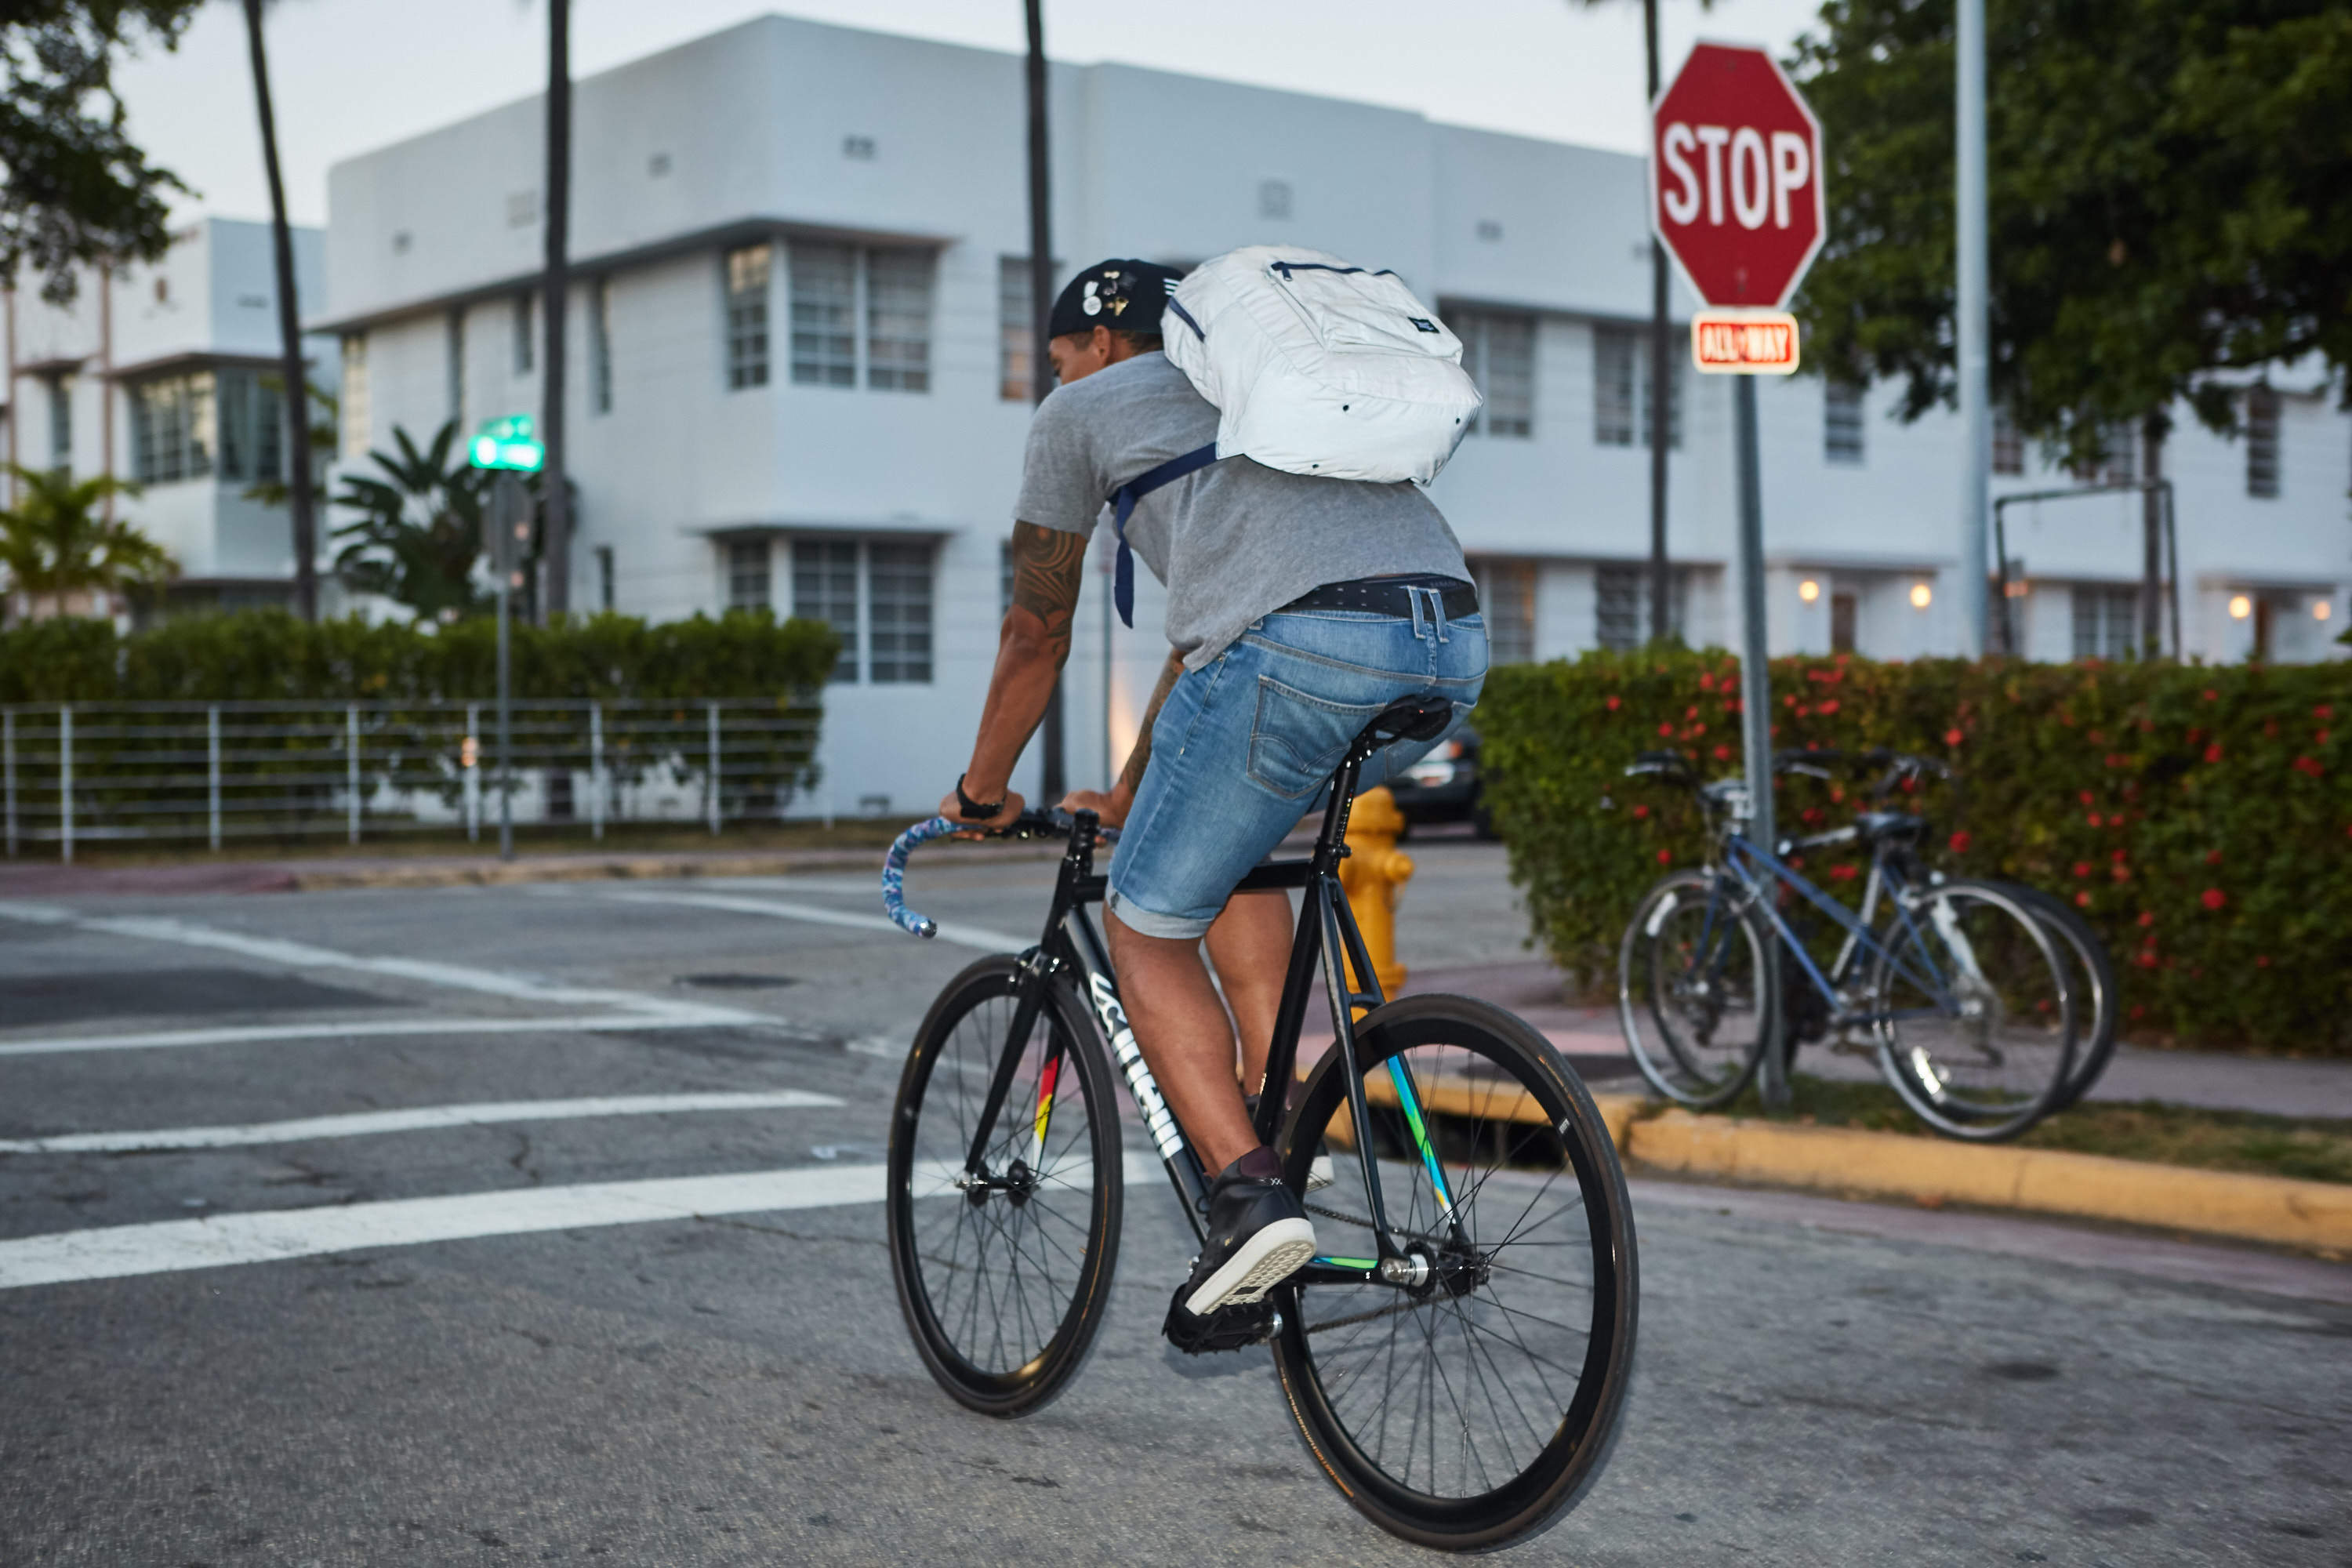 herschel_supply_co_wordintown_copyright_cinelli_levis_convers_fixed_gear_fixie_bycicles_2